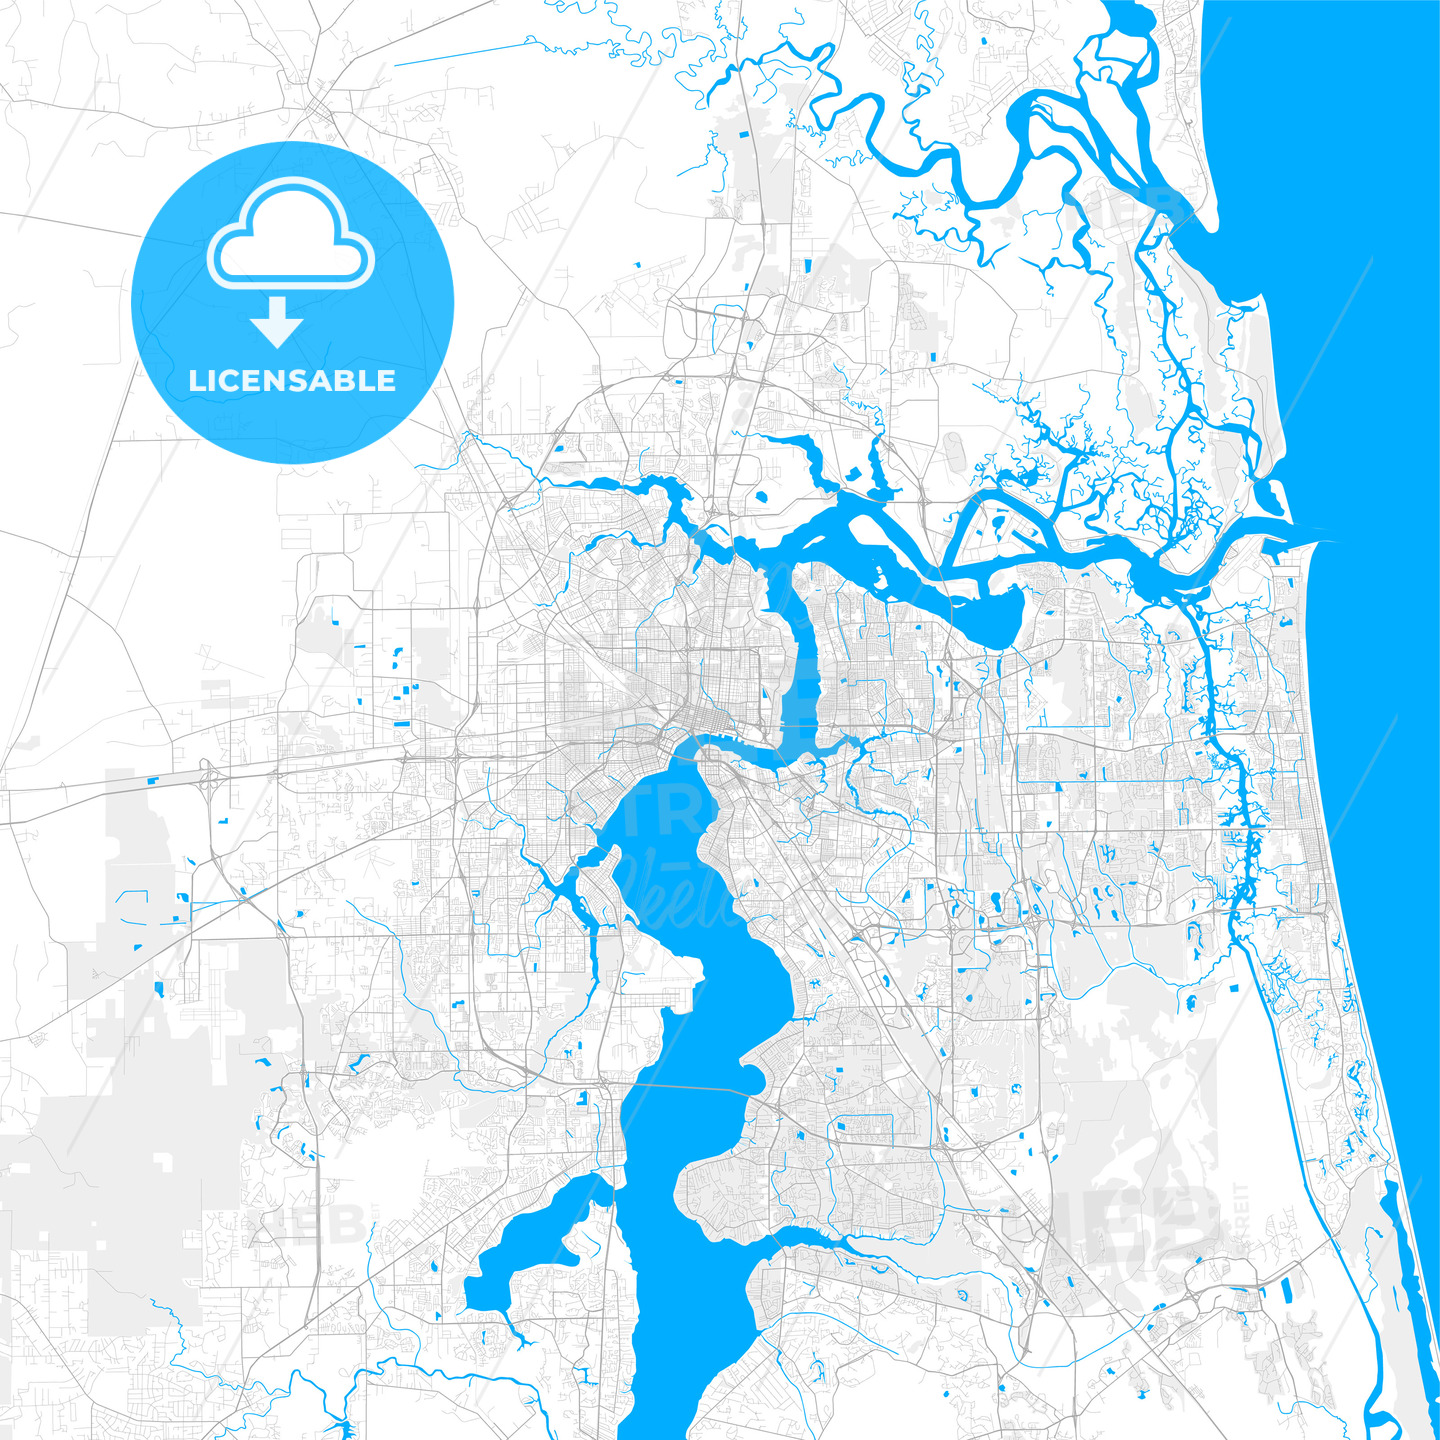 Rich detailed vector map of Jacksonville, Florida, U.S.A.